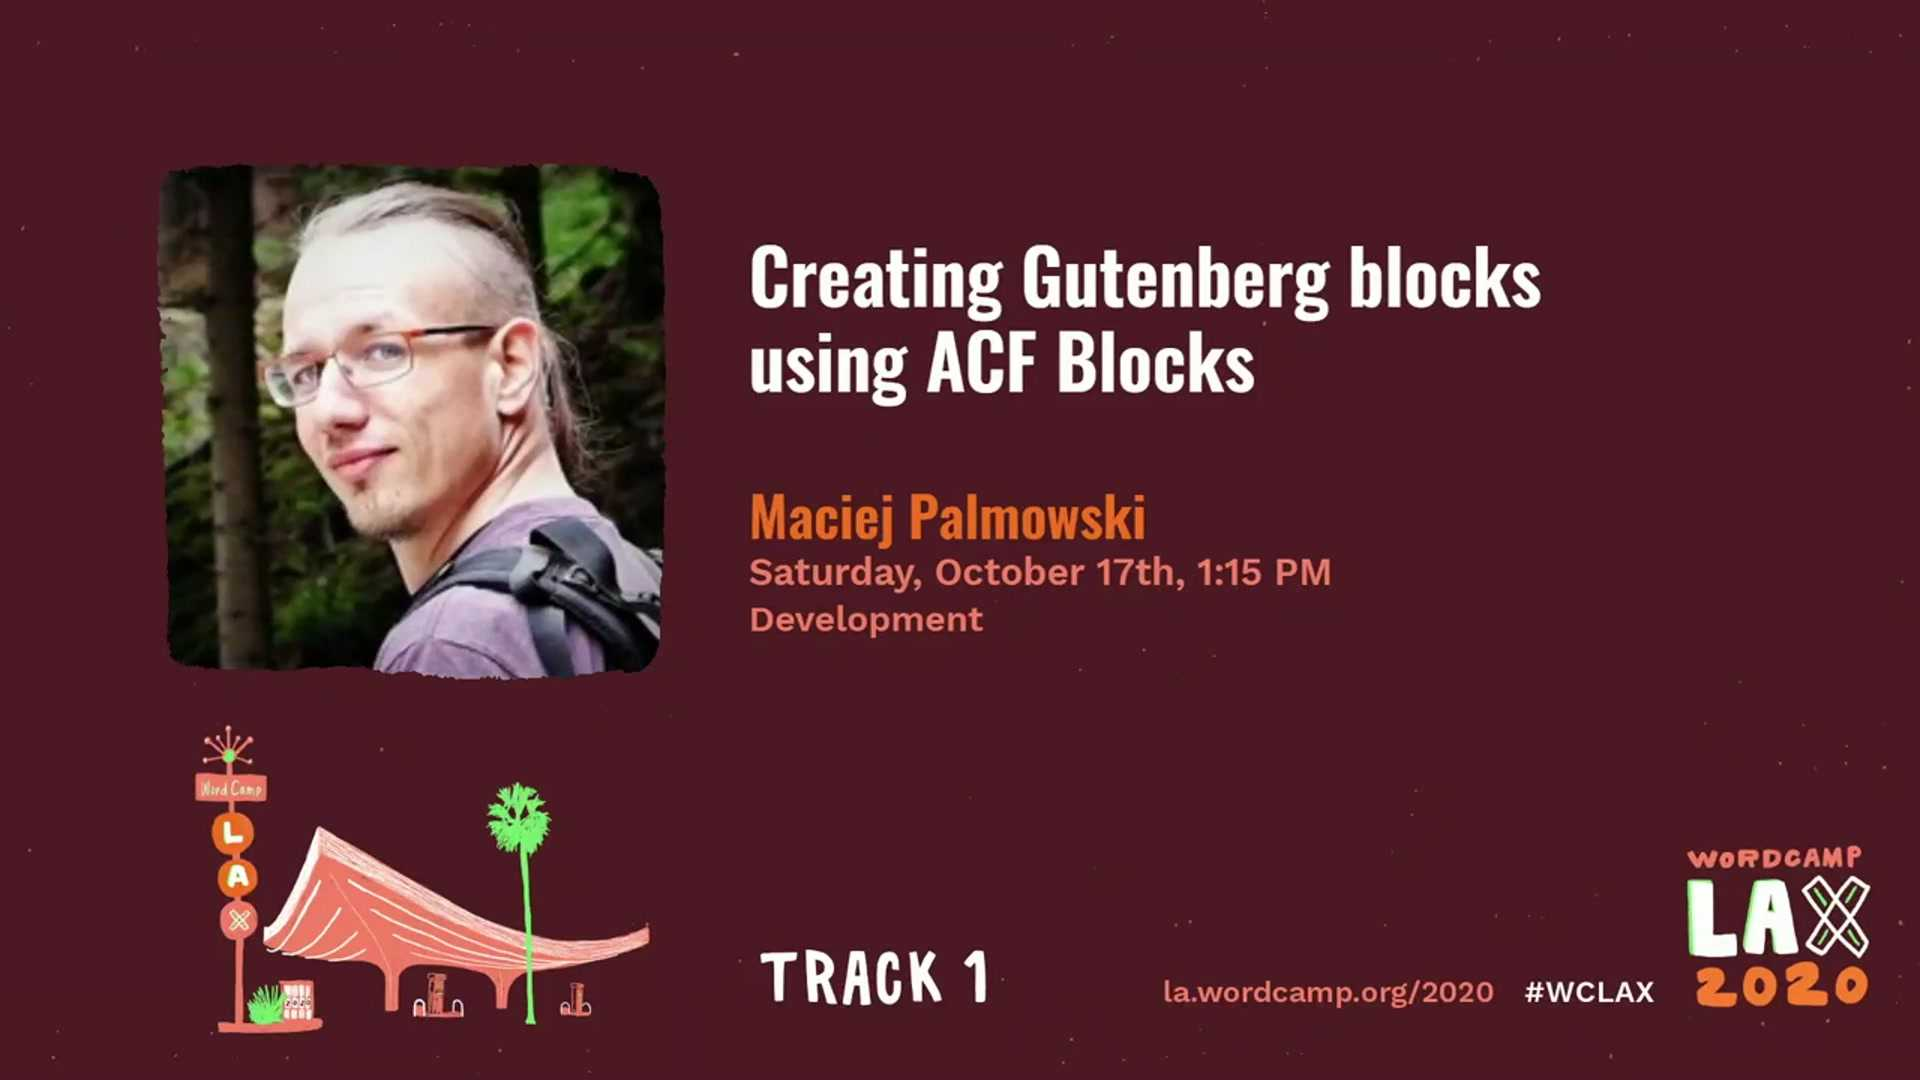 Maciej Palmowski: Creating Gutenberg Blocks Using ACF Blocks